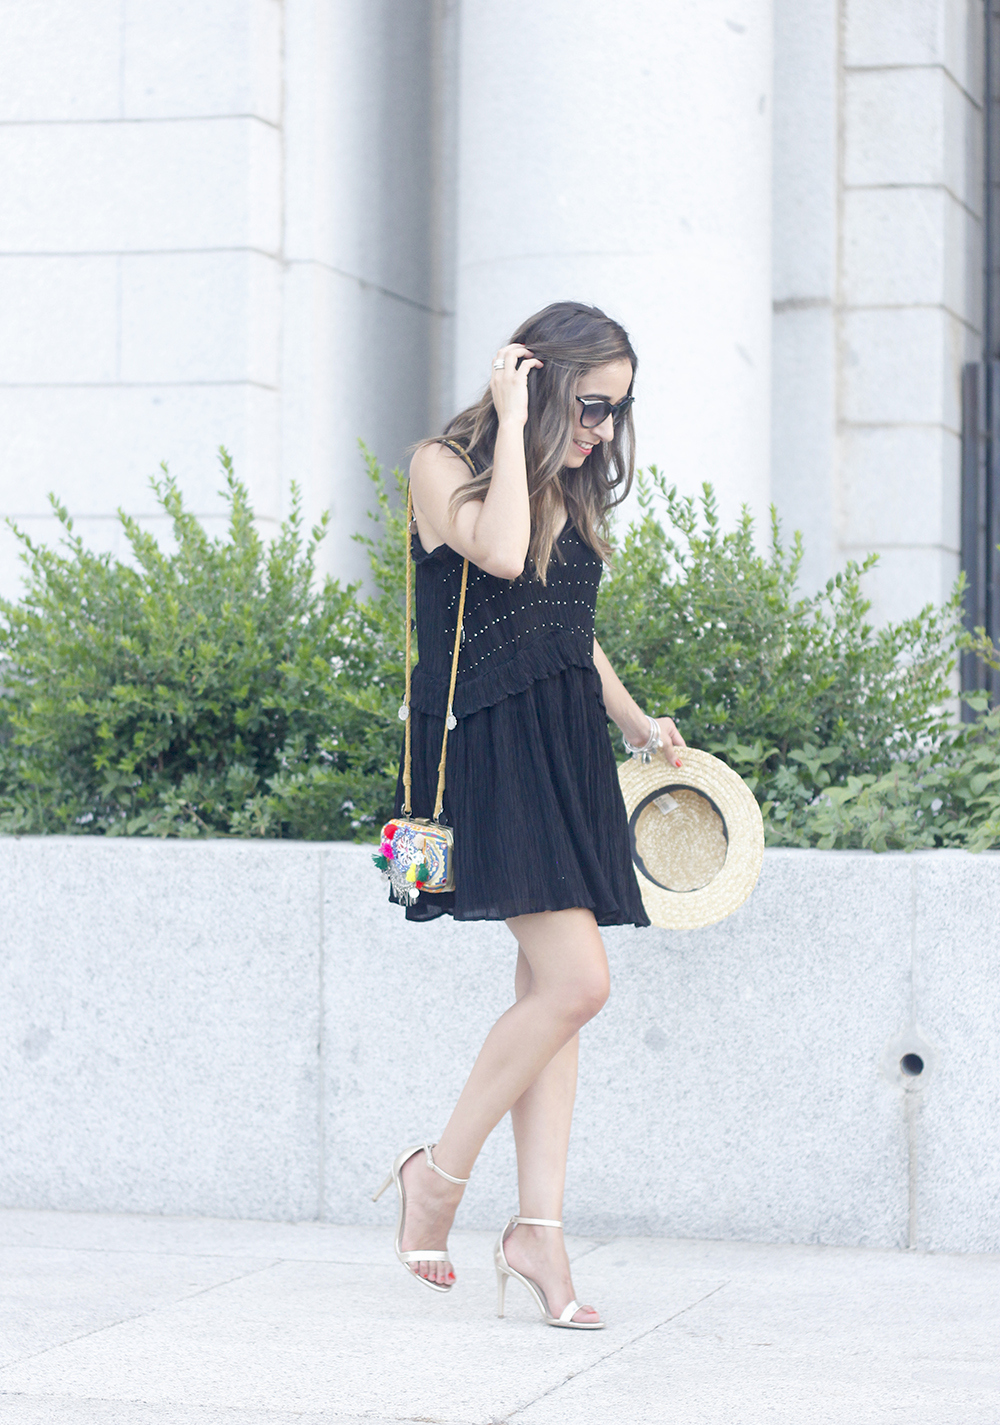 boho black canotier heels summer outfit bag with pom poms summer outfit13